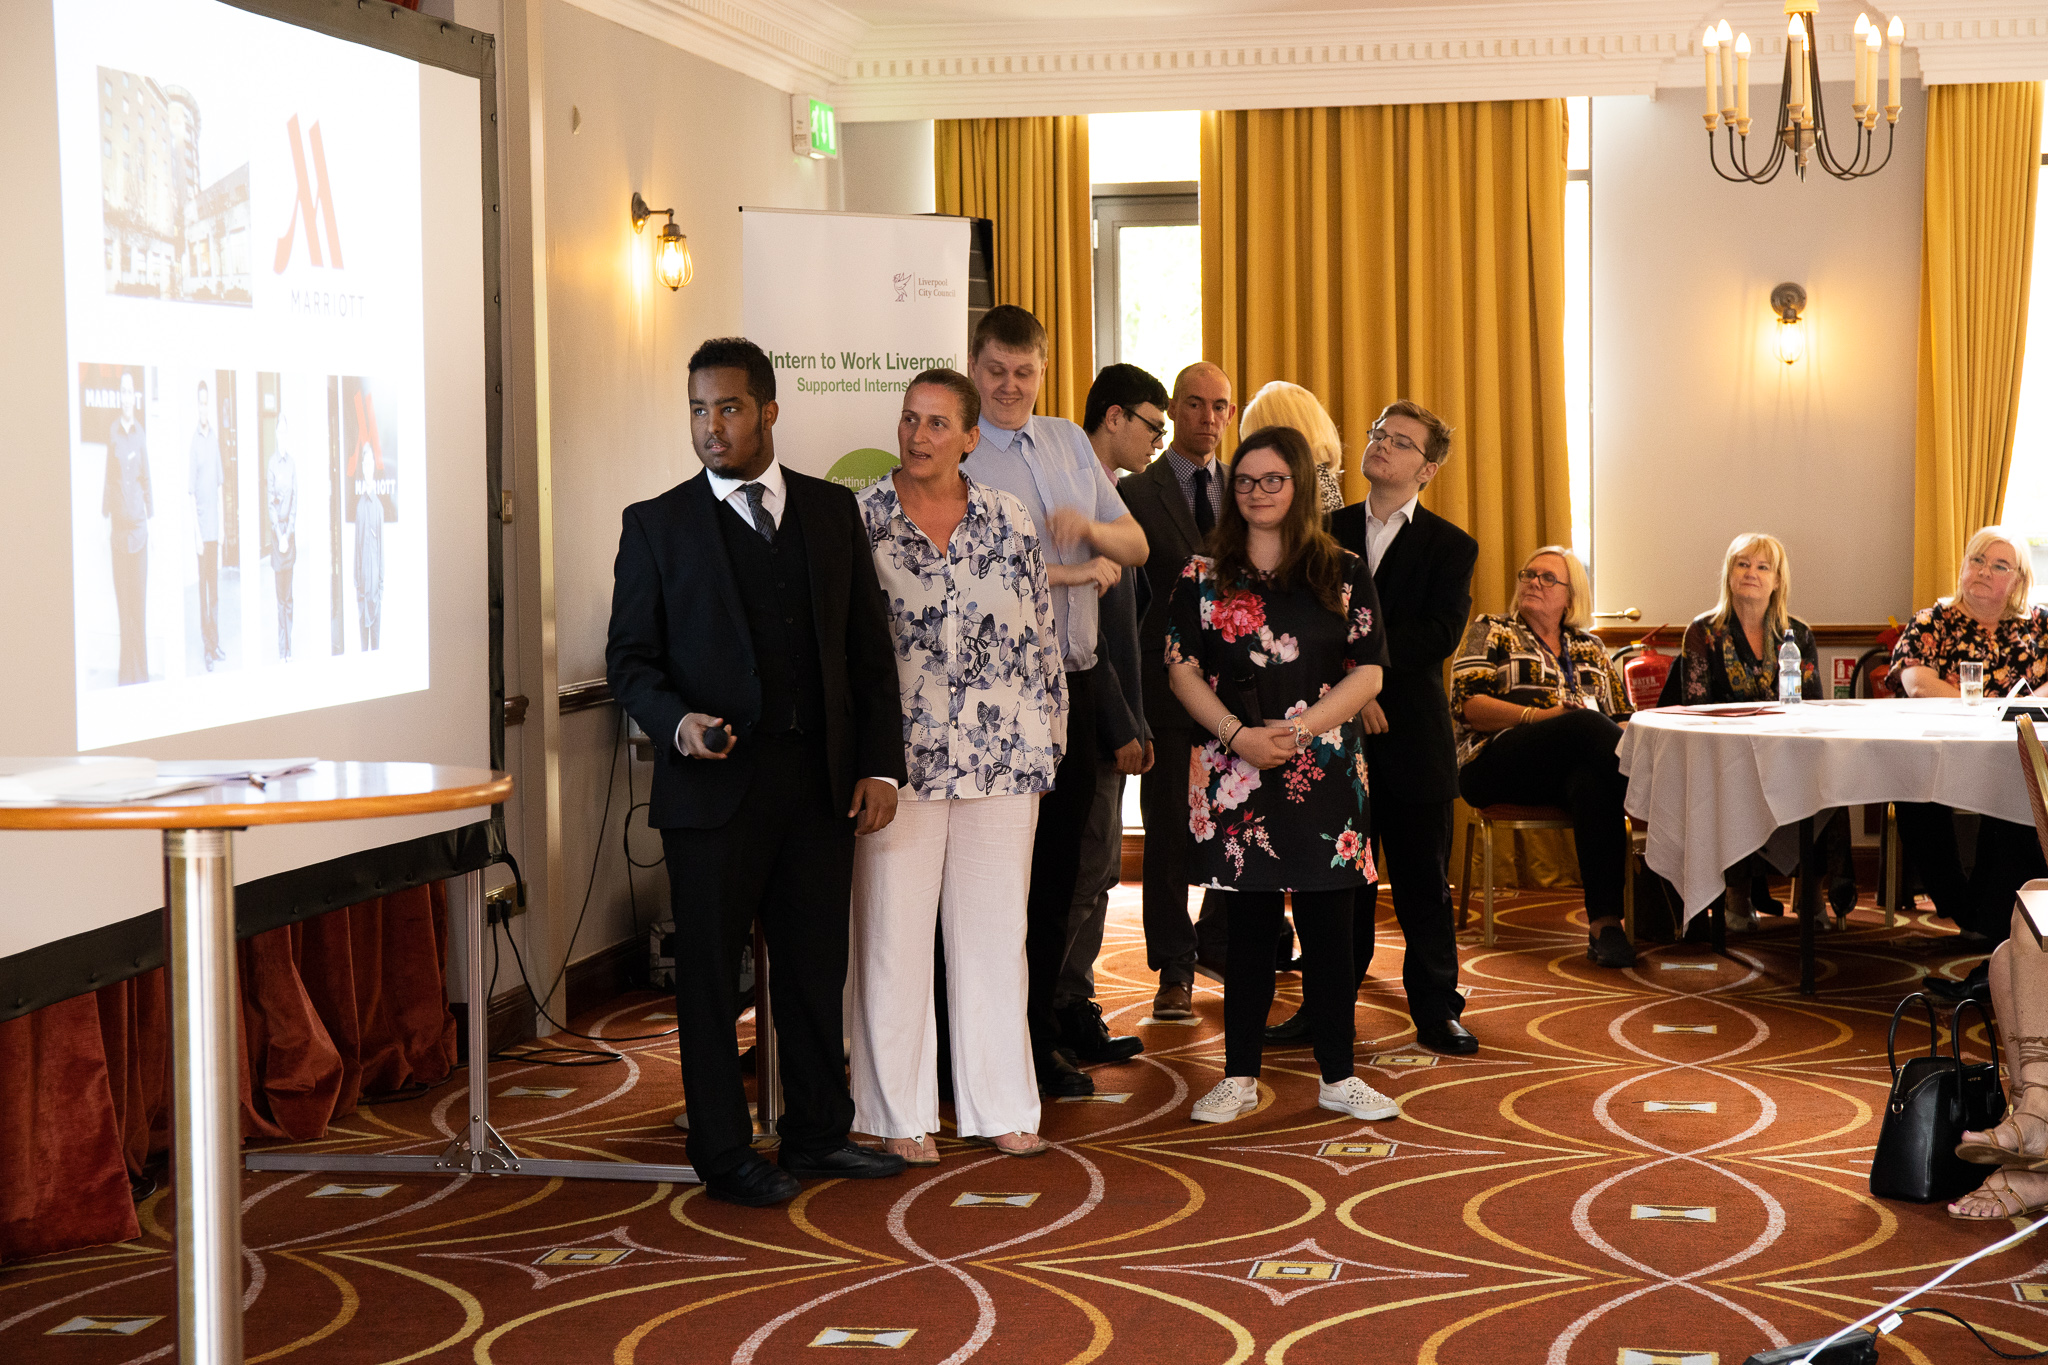 Adam, a supported intern from Sandfield Park School based at Marriott Hotel, describing his experience with help from his job coach Lynn.